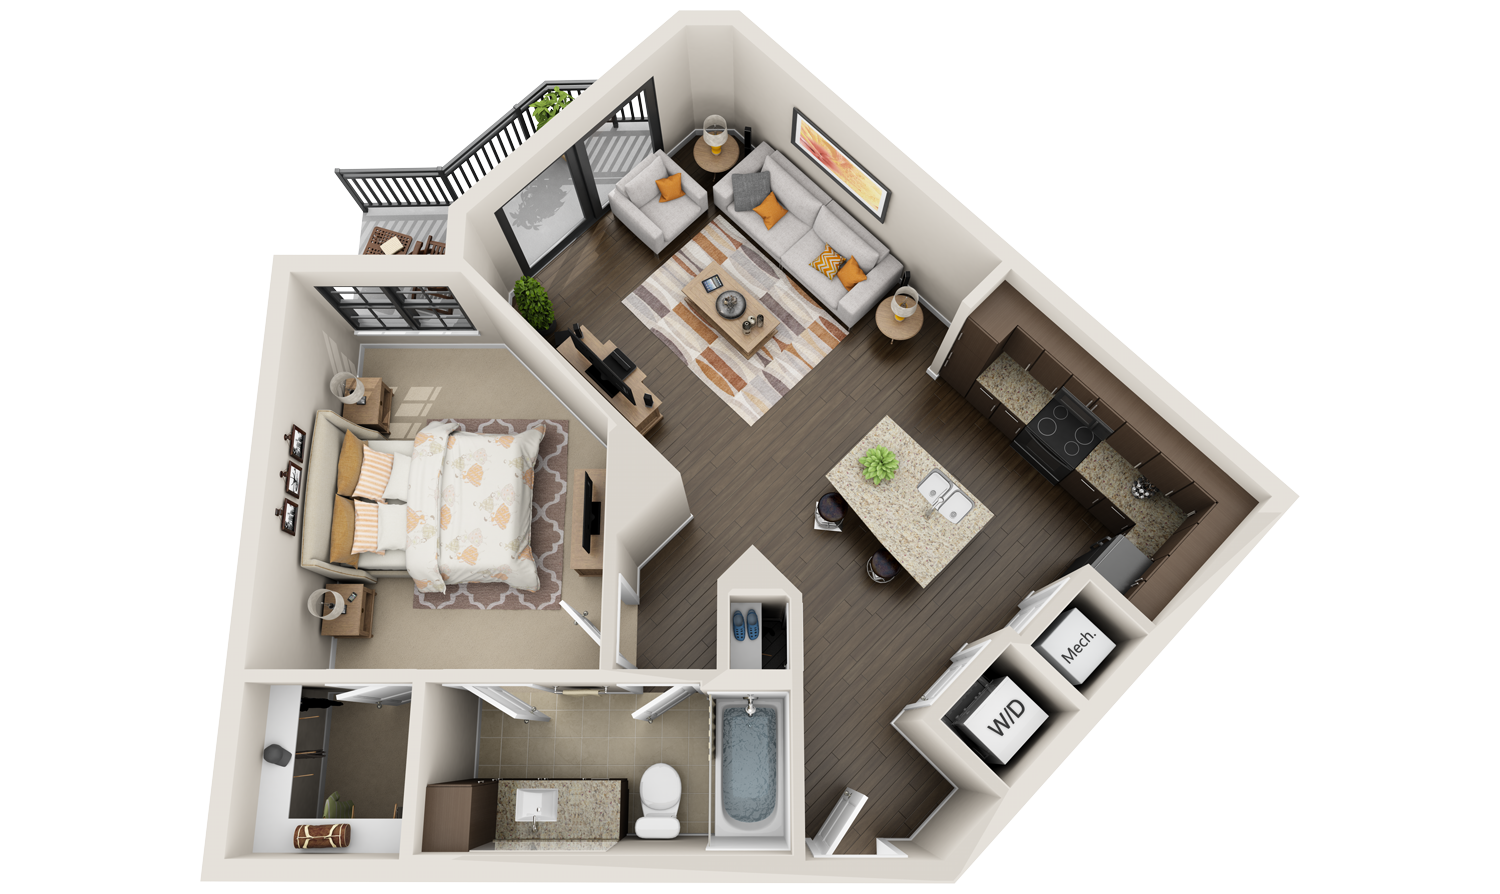 3d Floor Plans For Apartments That Look Real